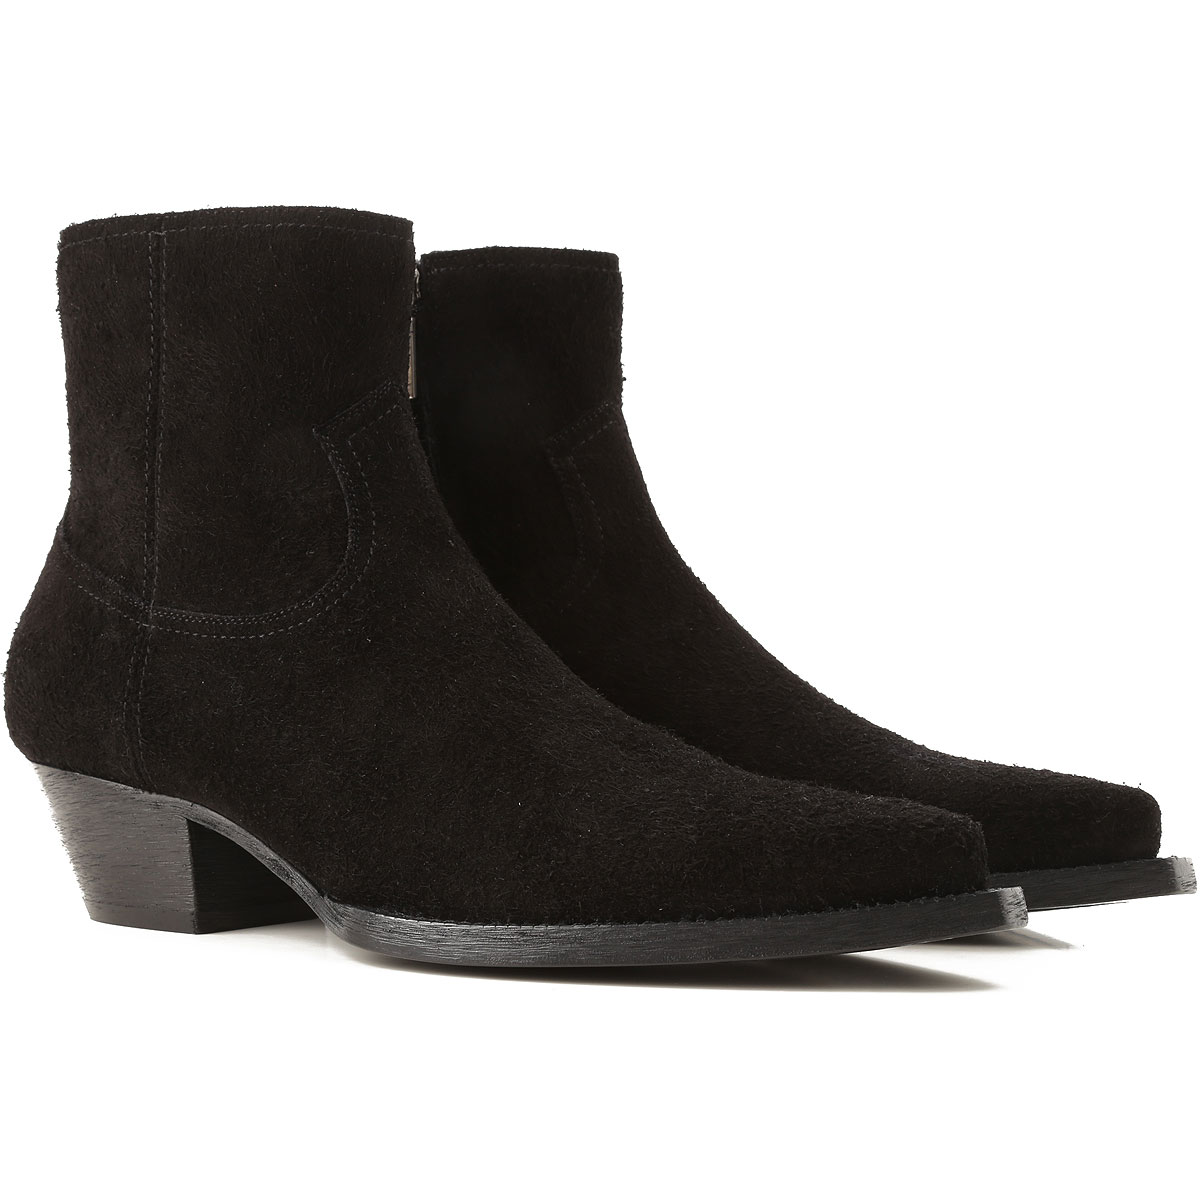 Image of Yves Saint Laurent Boots for Men, Booties, Black, suede, 2017, 10 10.5 7.5 8 8.5 9 9.5